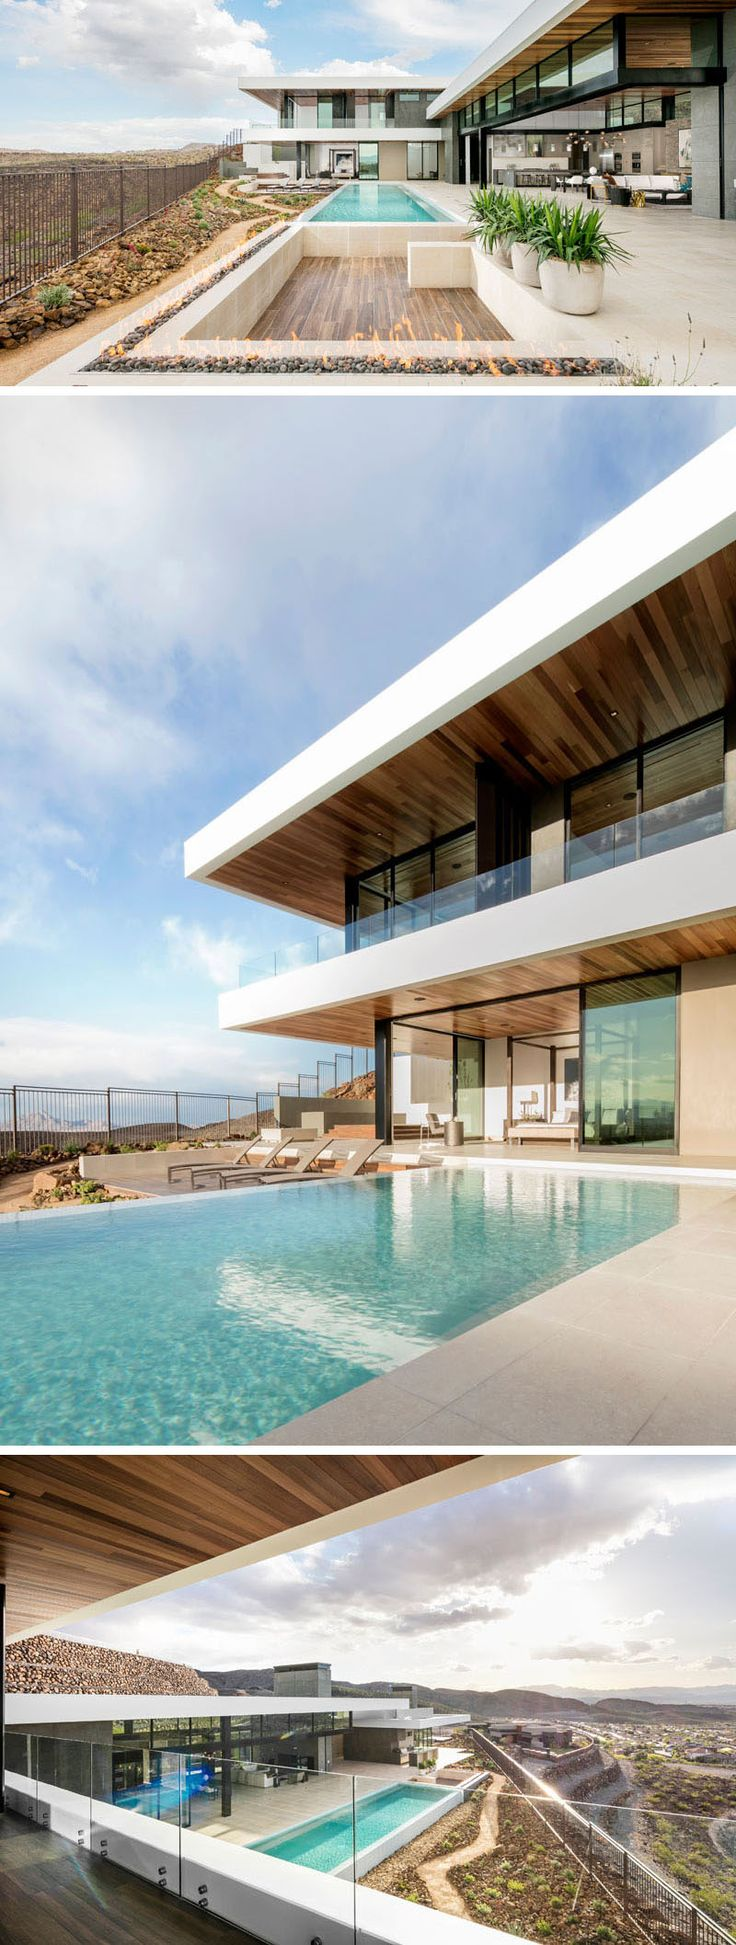 This modern house has a large outdoor entertaining area next to the swimming pool, while a sunken area perfect for a few couches is surrounded by an outdoor fireplace.